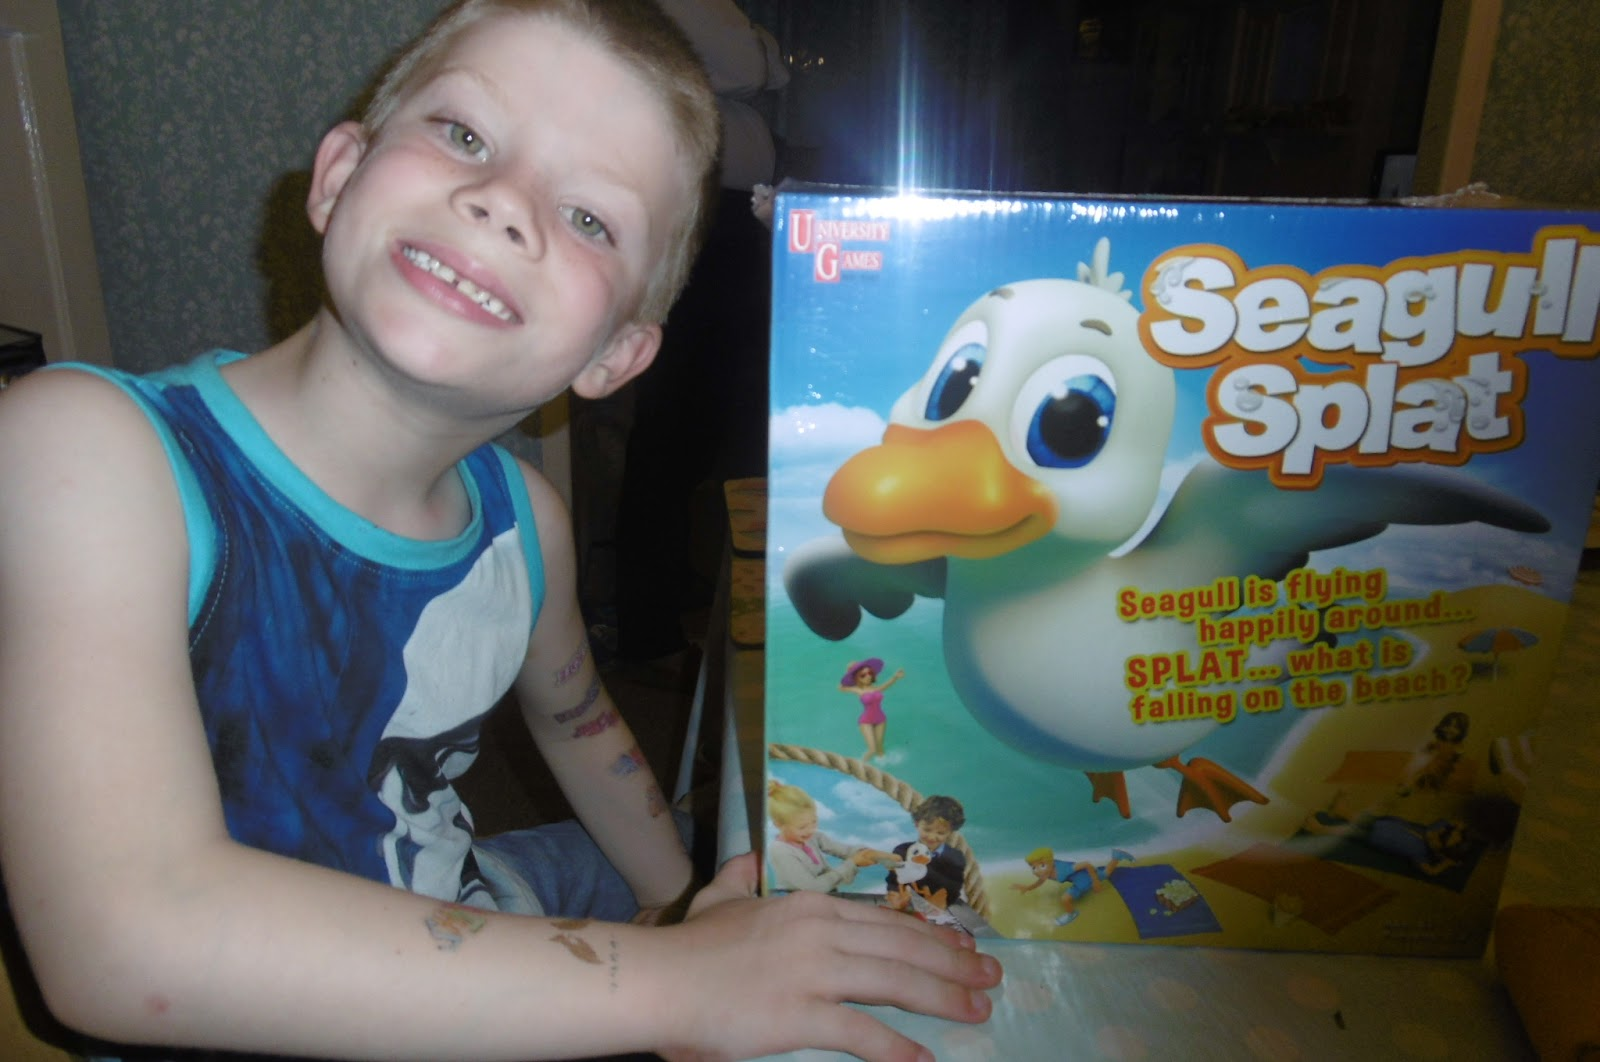 madhouse family reviews university games seagull splat review